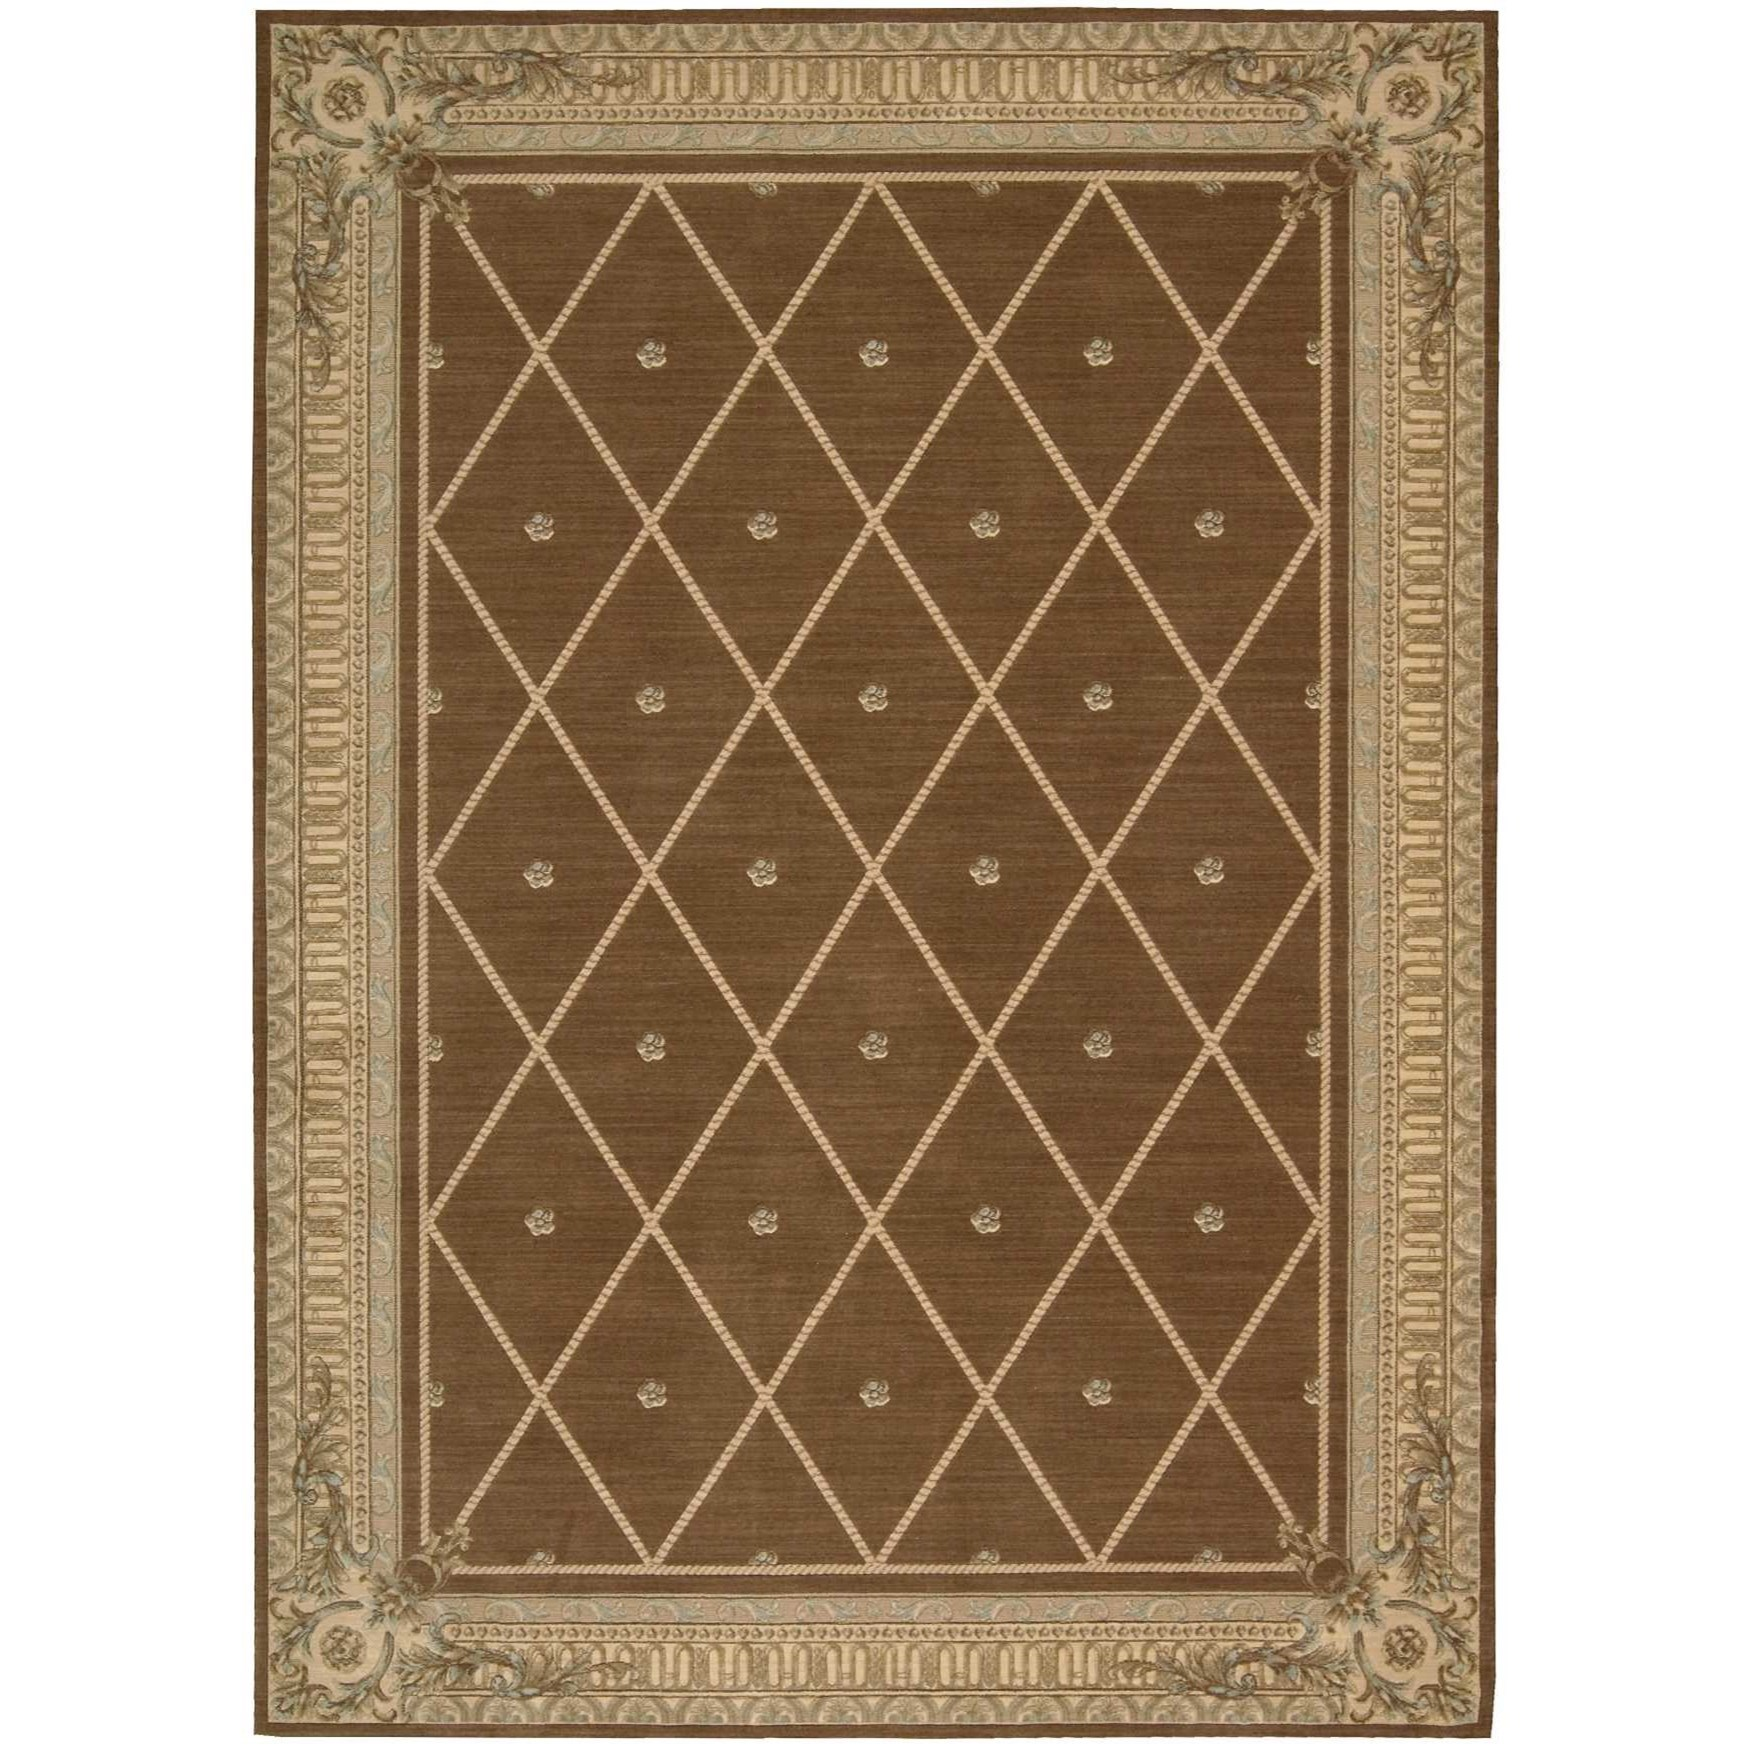 "9'6"" x 13' Mink Rectangle Rug"